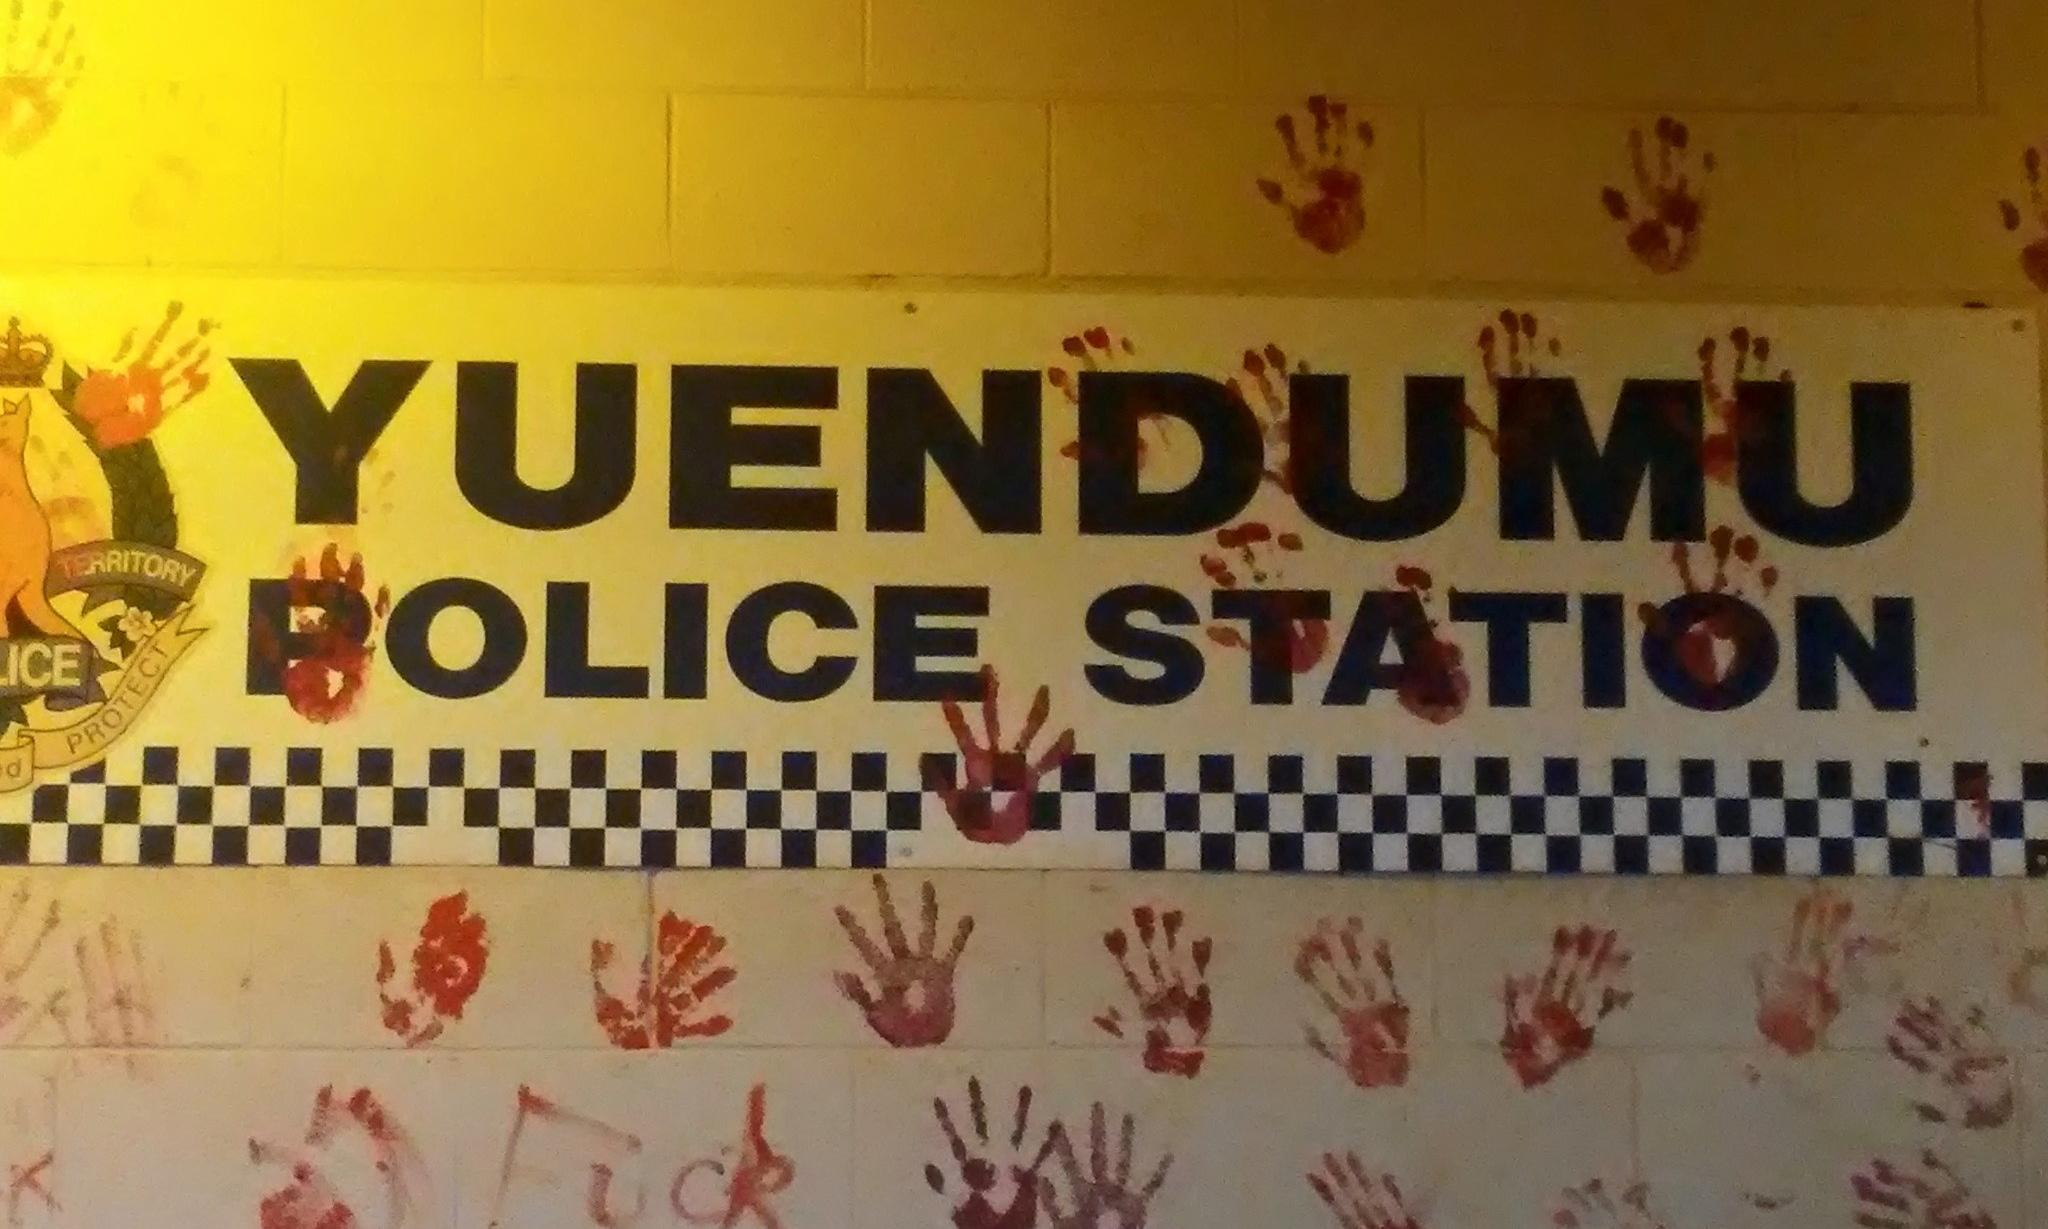 Yuendumu police shooting: 'justice for Walker' rallies widen to Canberra and Darwin